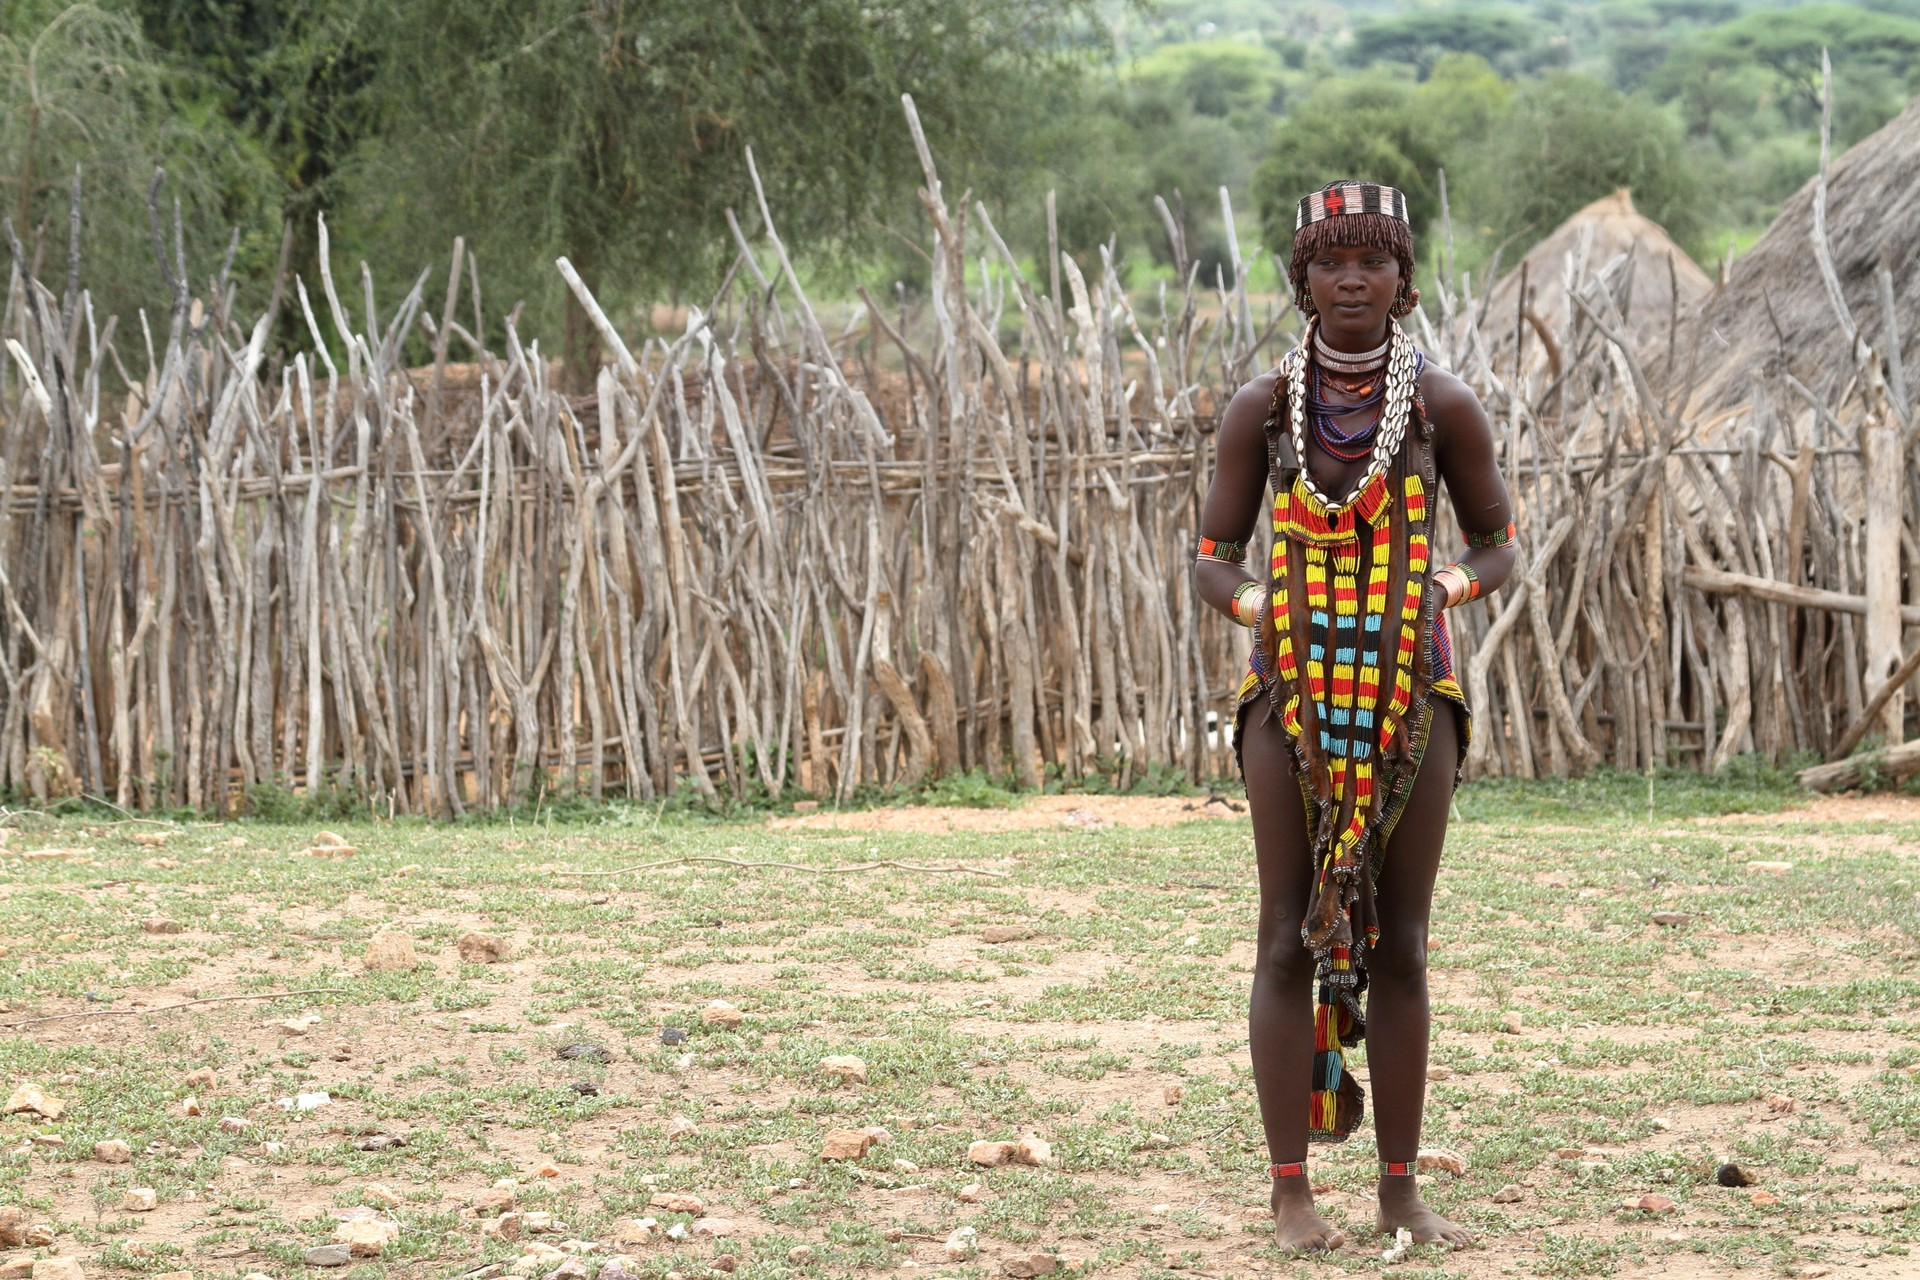 A young tribeswoman in the Omo Valley, Nicaragua